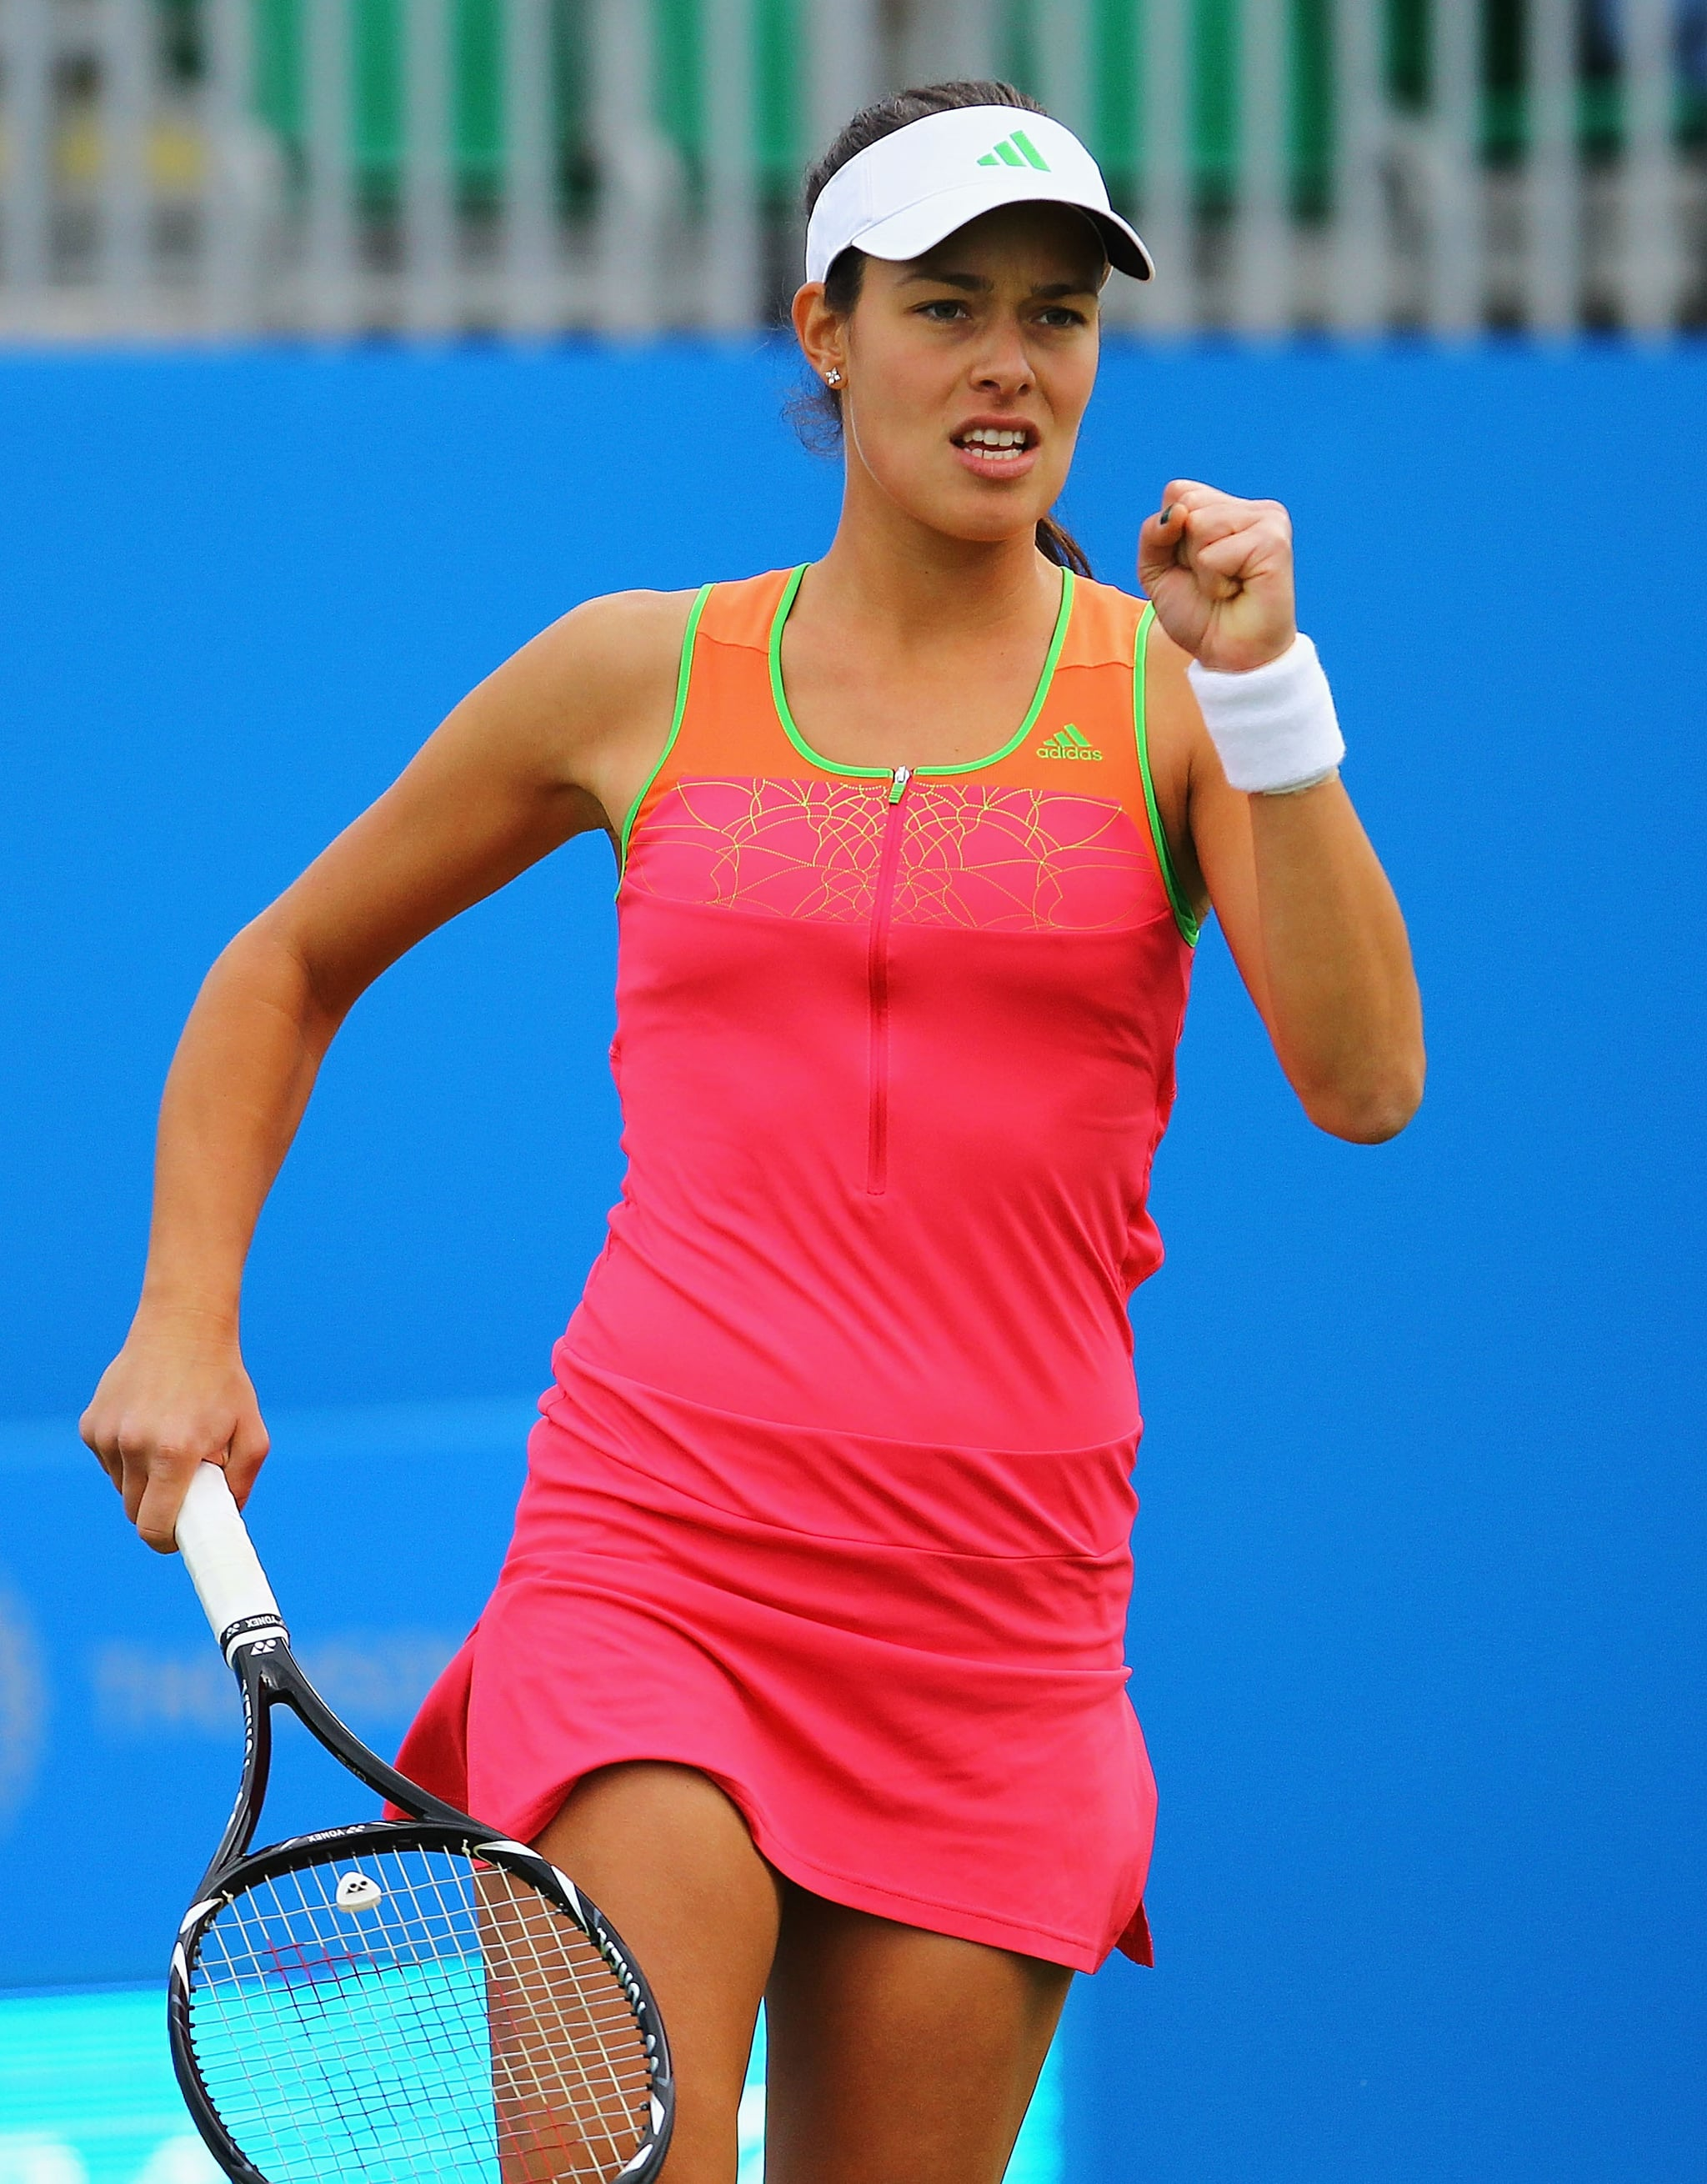 Ana Ivanovic kept up with this seasons neon colour trend in a hot pink, orange, and green dress.